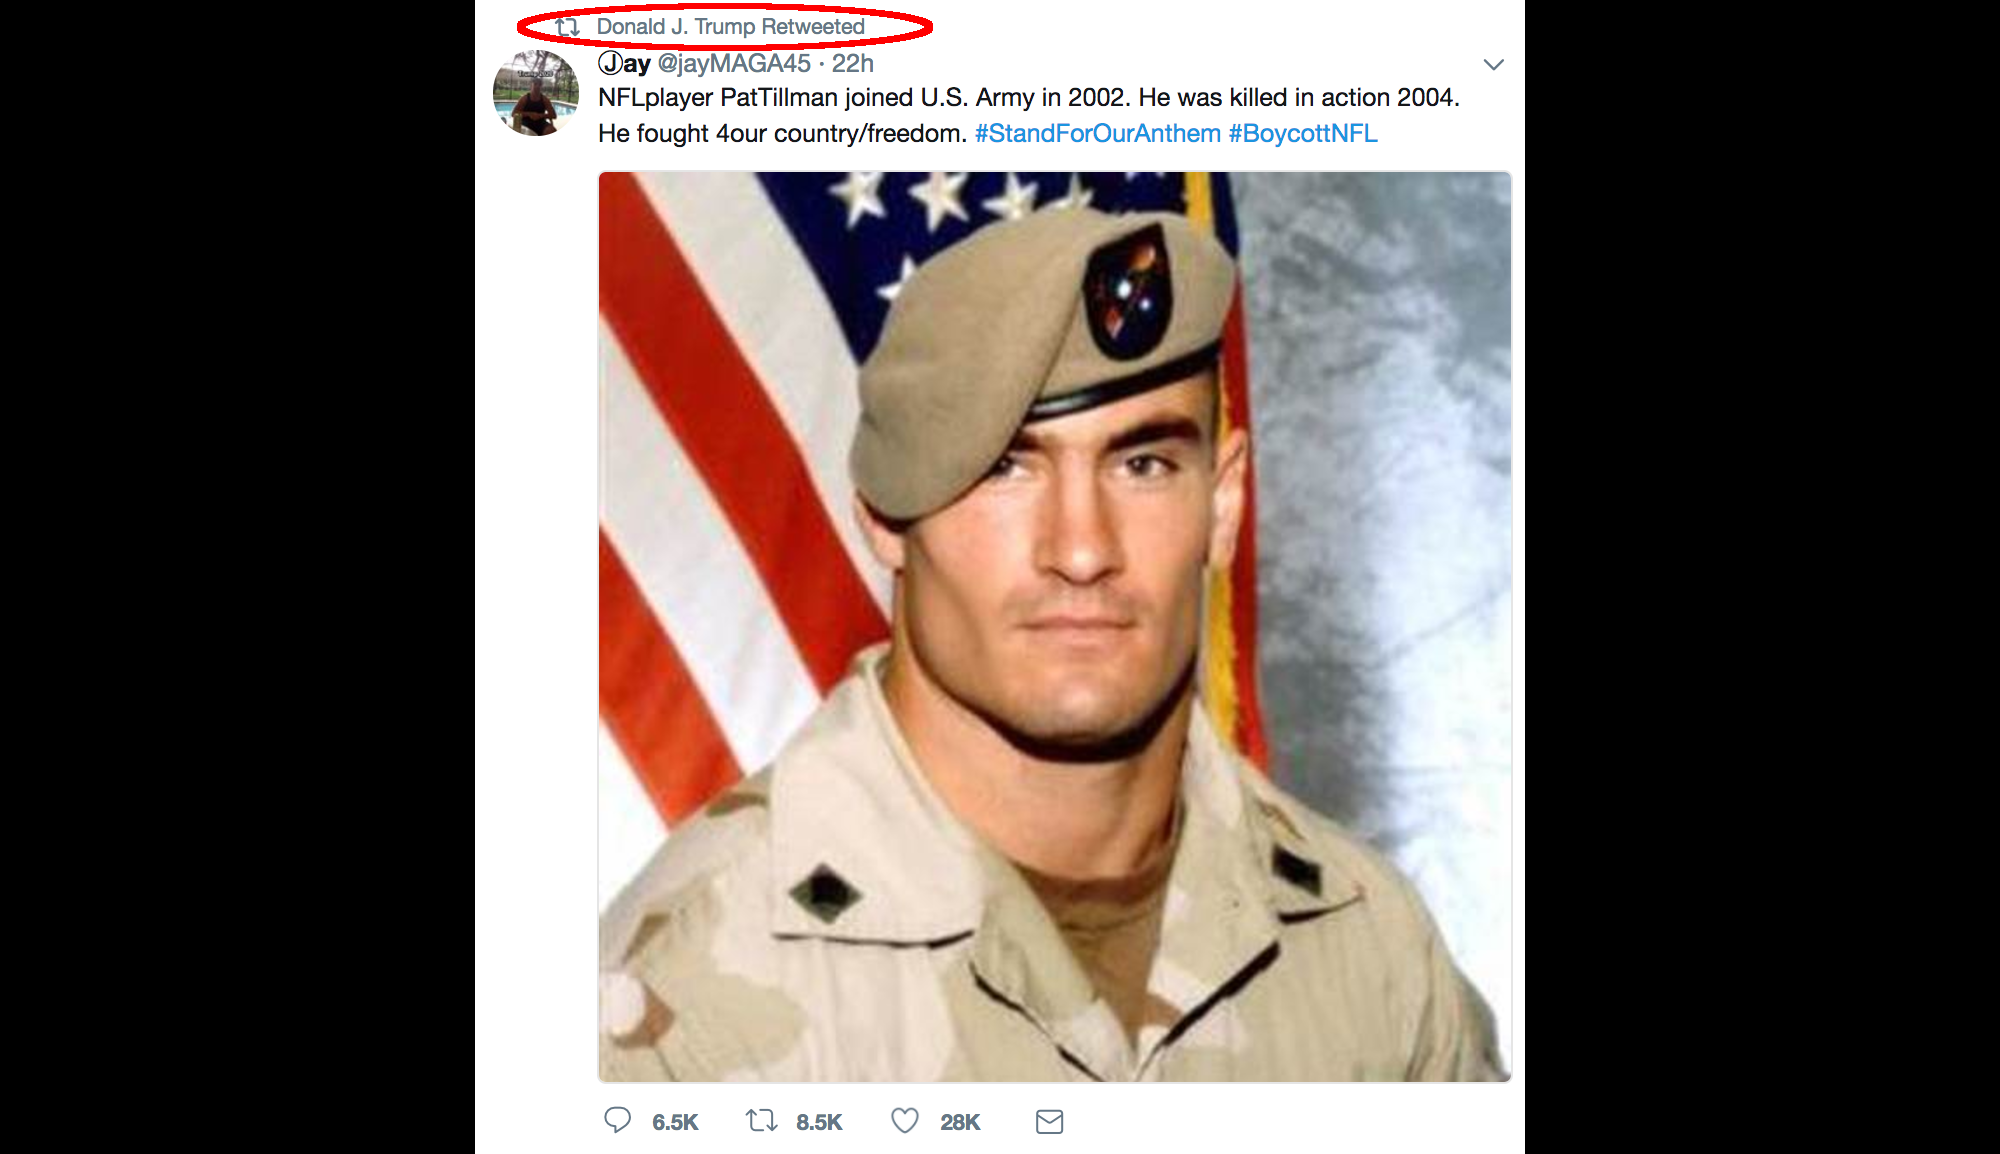 Don't 'Politicize' My Husband's Service - Pat Tillman's Widow Scolds Trump